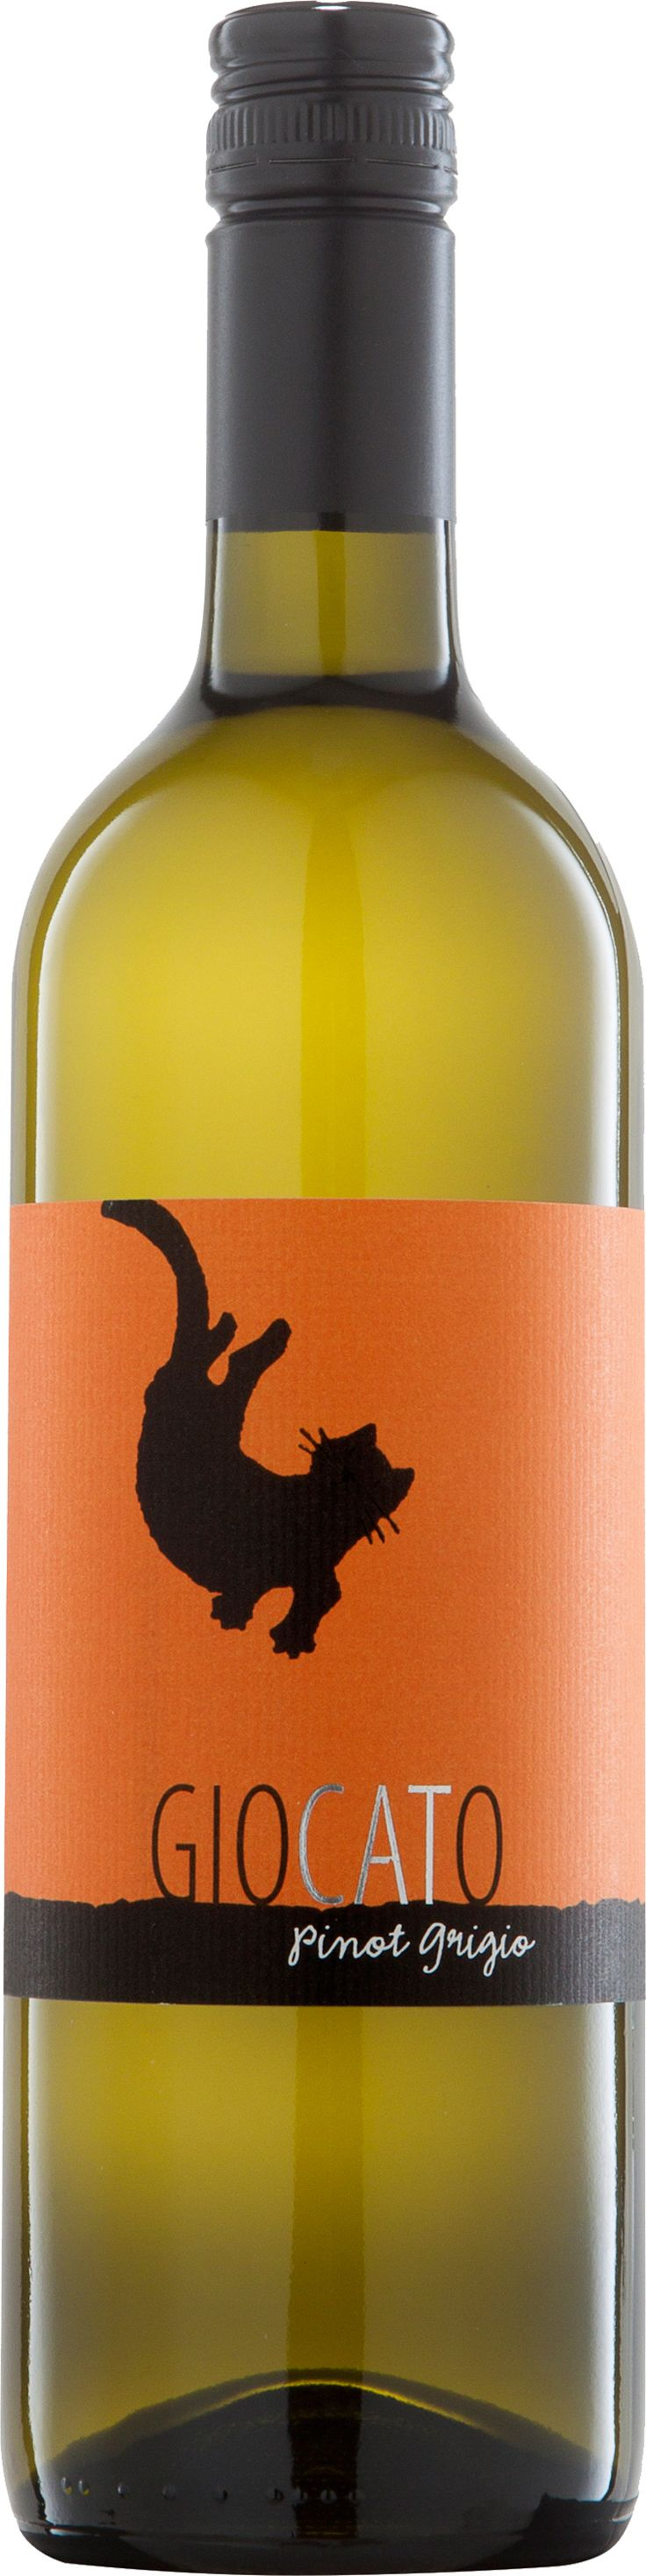 The perfect wine for Halloween:  Giocato Pinot Grigio